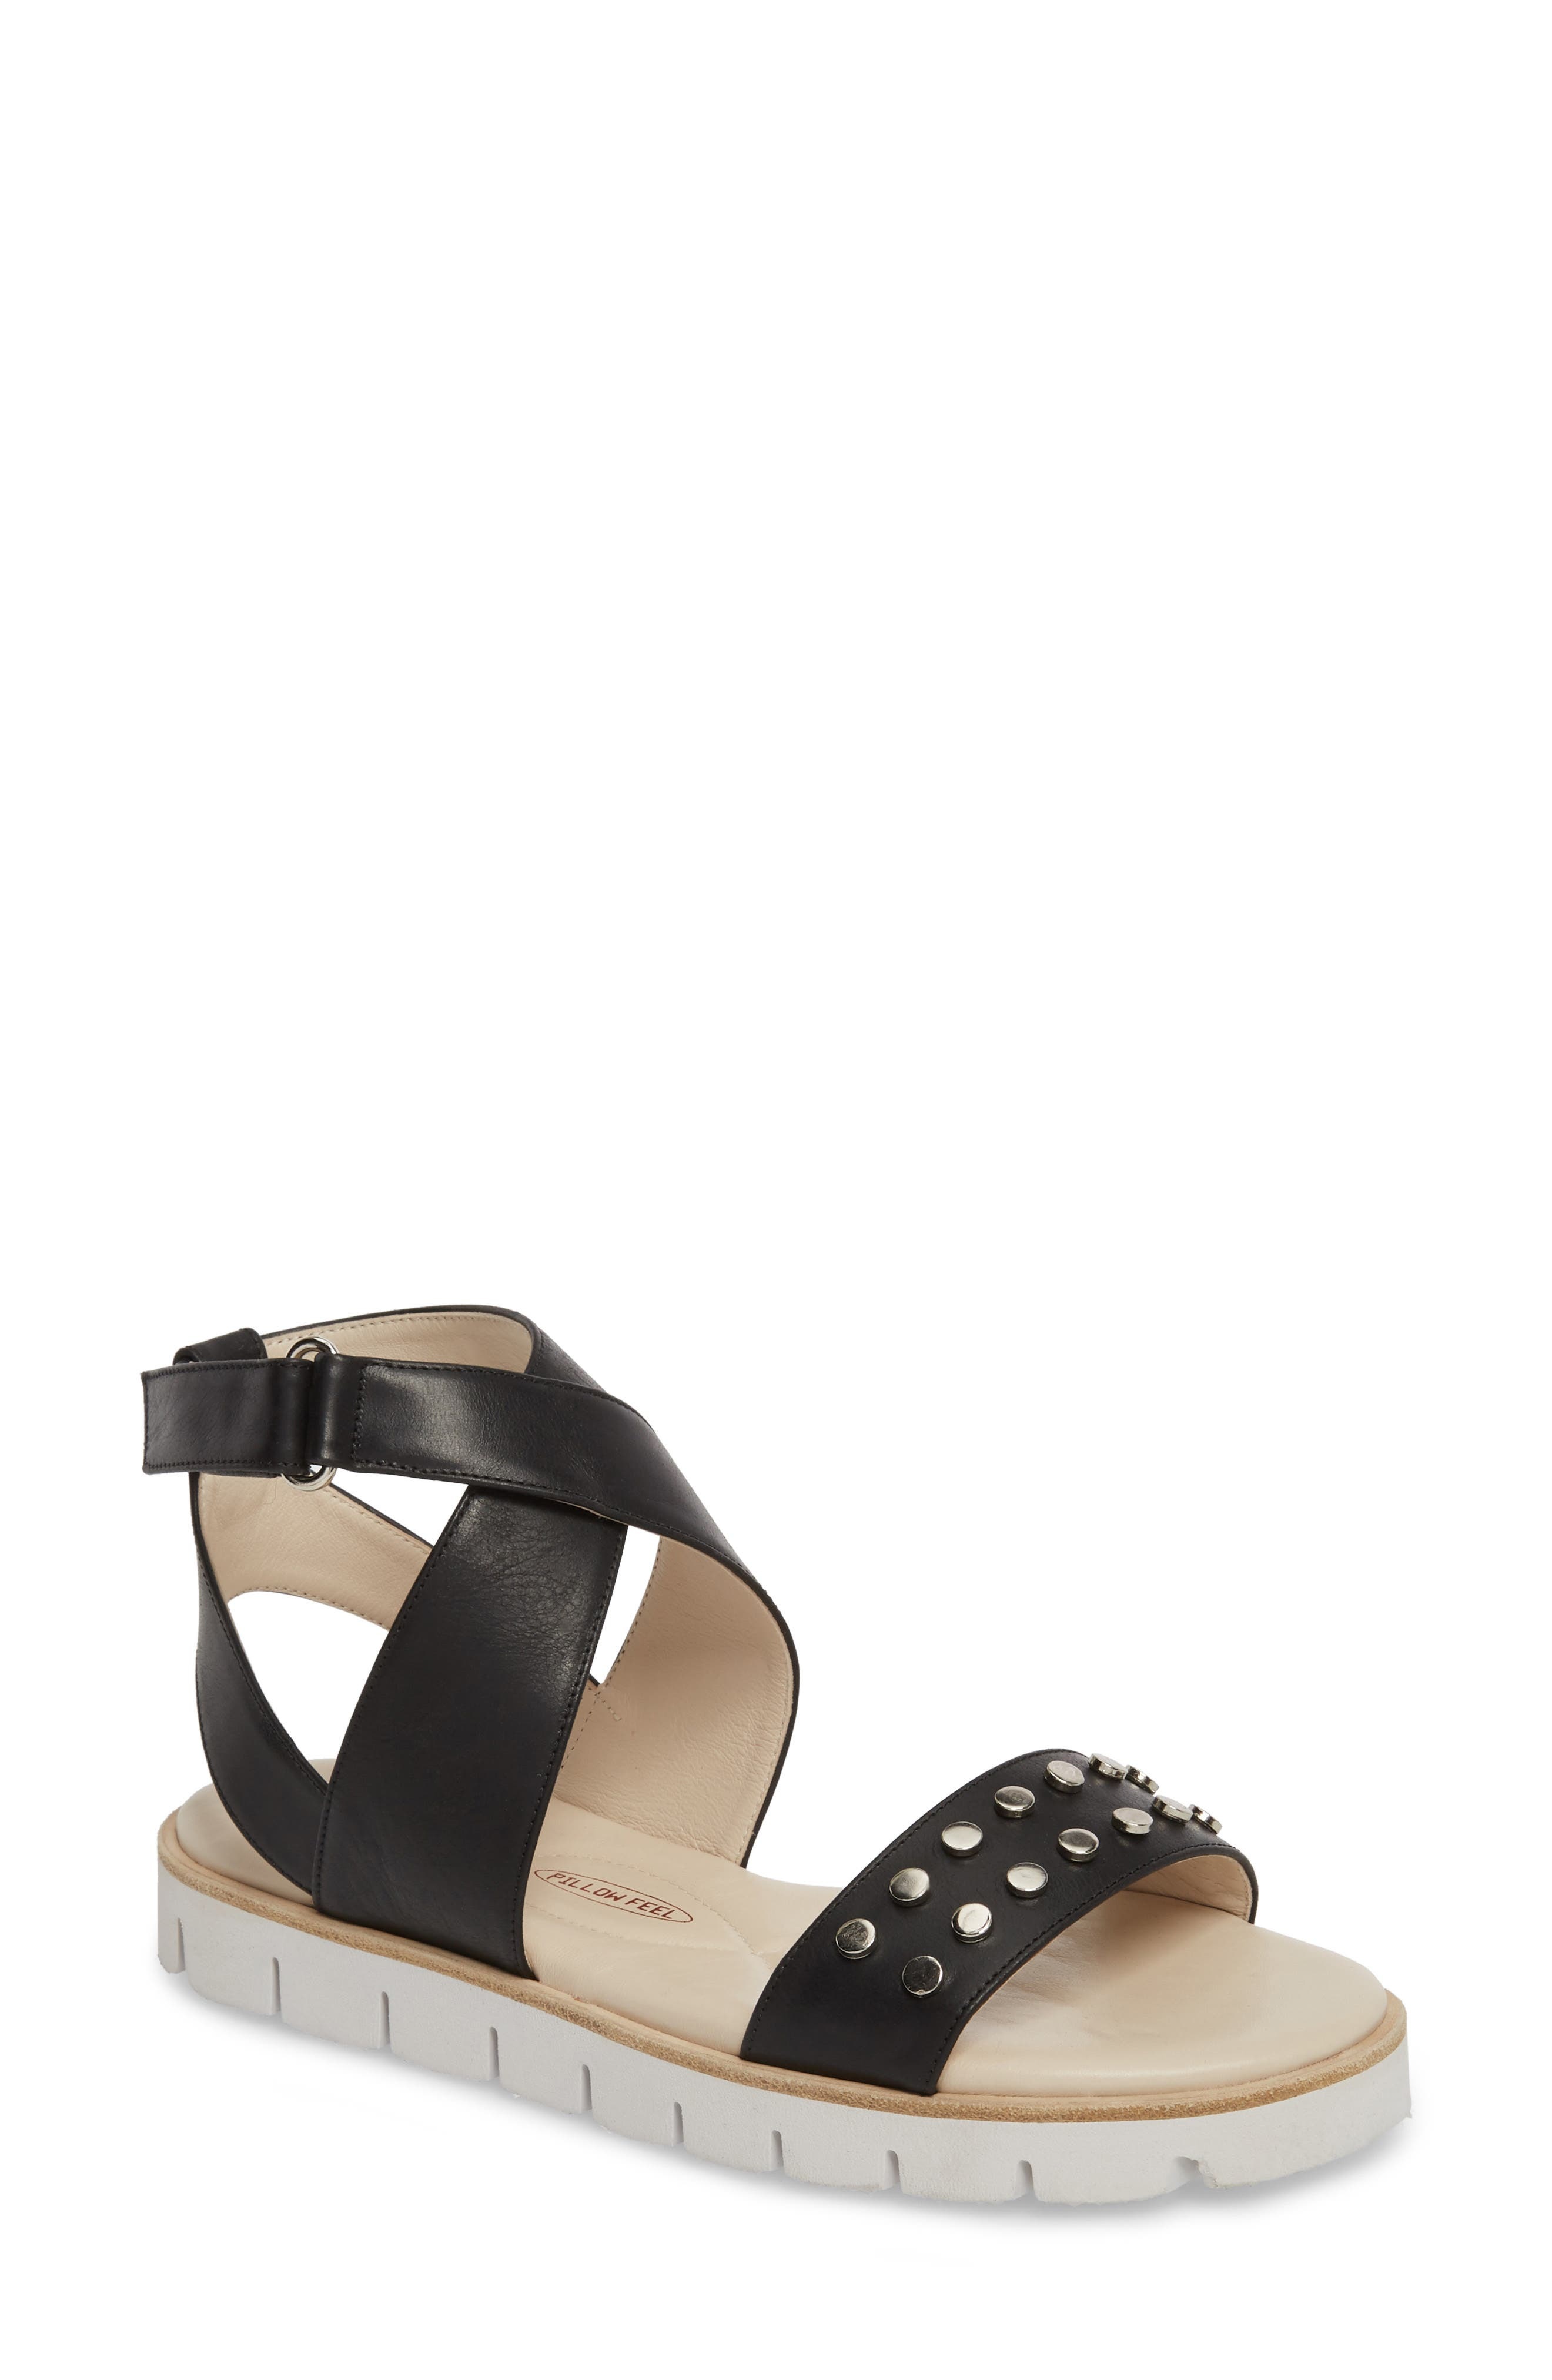 Barlume Sandal,                             Main thumbnail 1, color,                             BLACK LEATHER